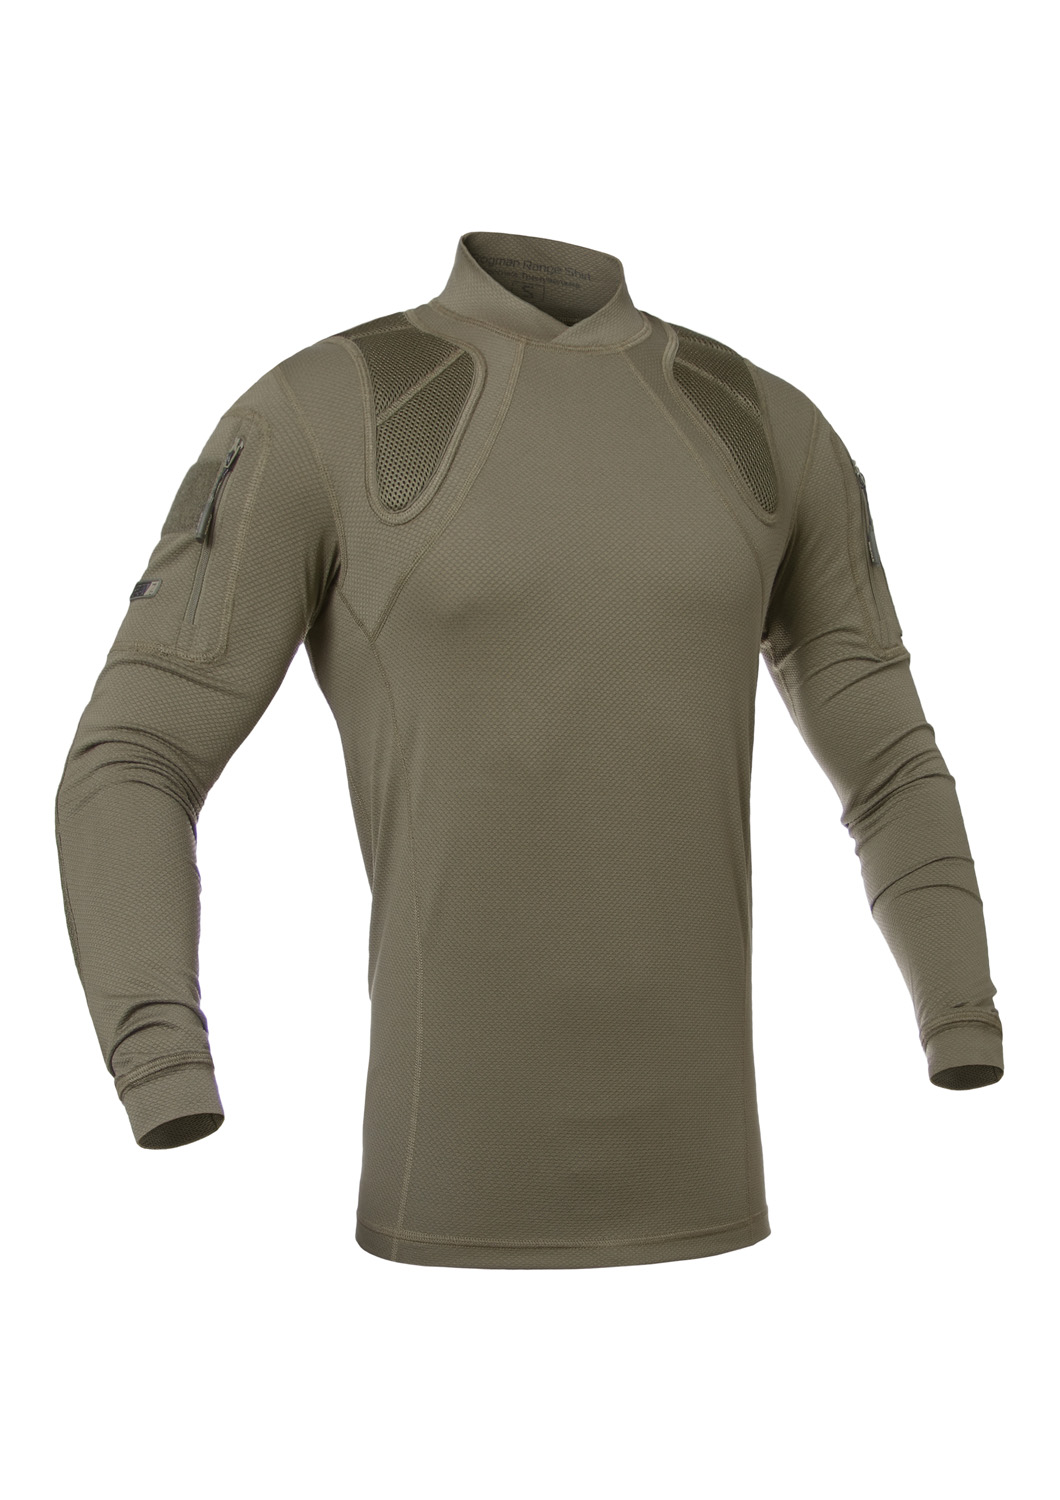 Field training shirt